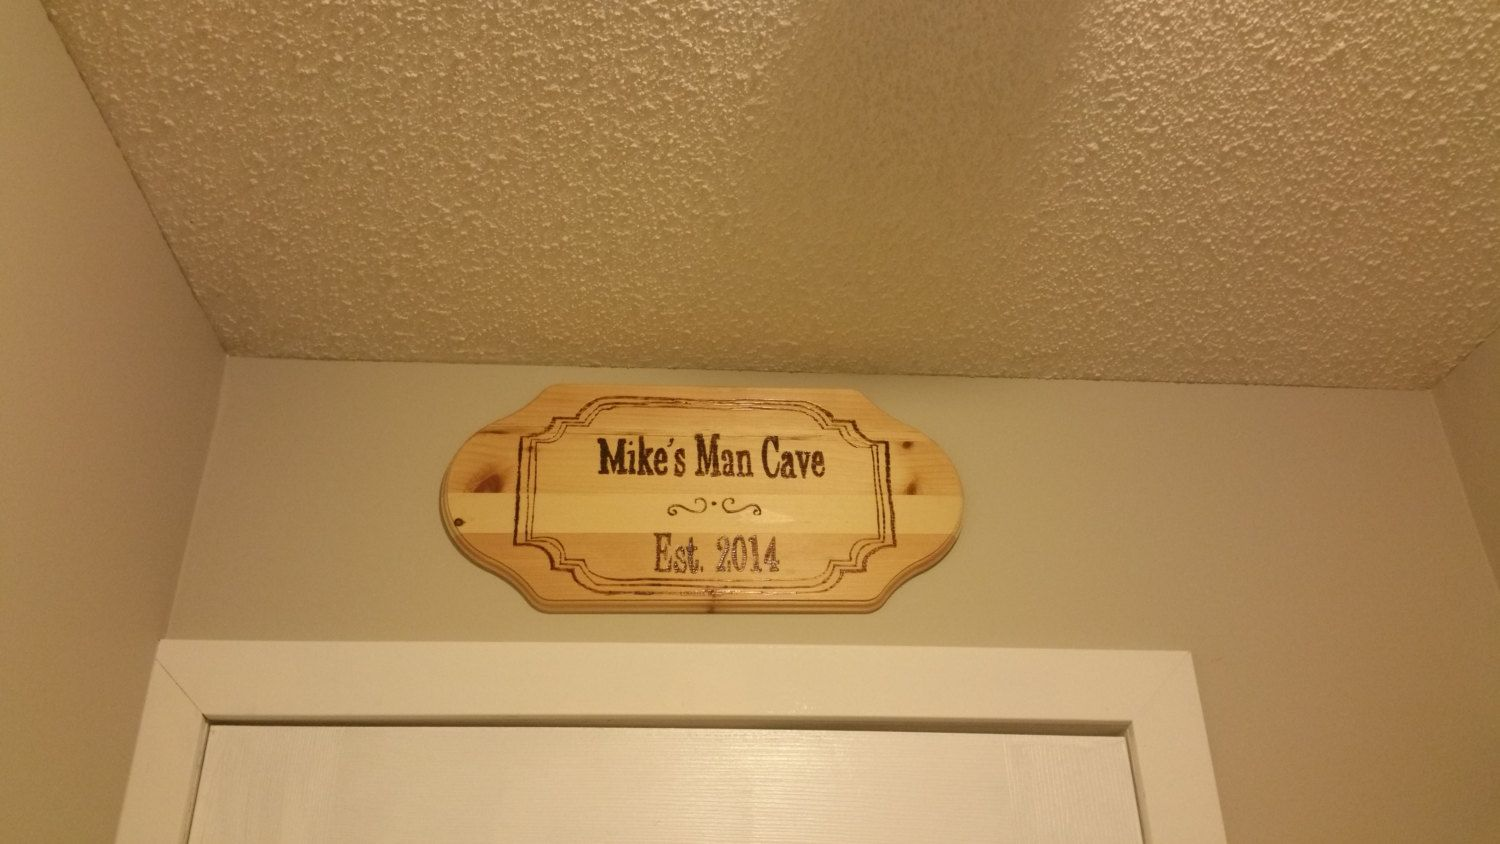 Personalized Man Cave Signs Etsy : Personalized man cave sign wood burned by burningembersigns